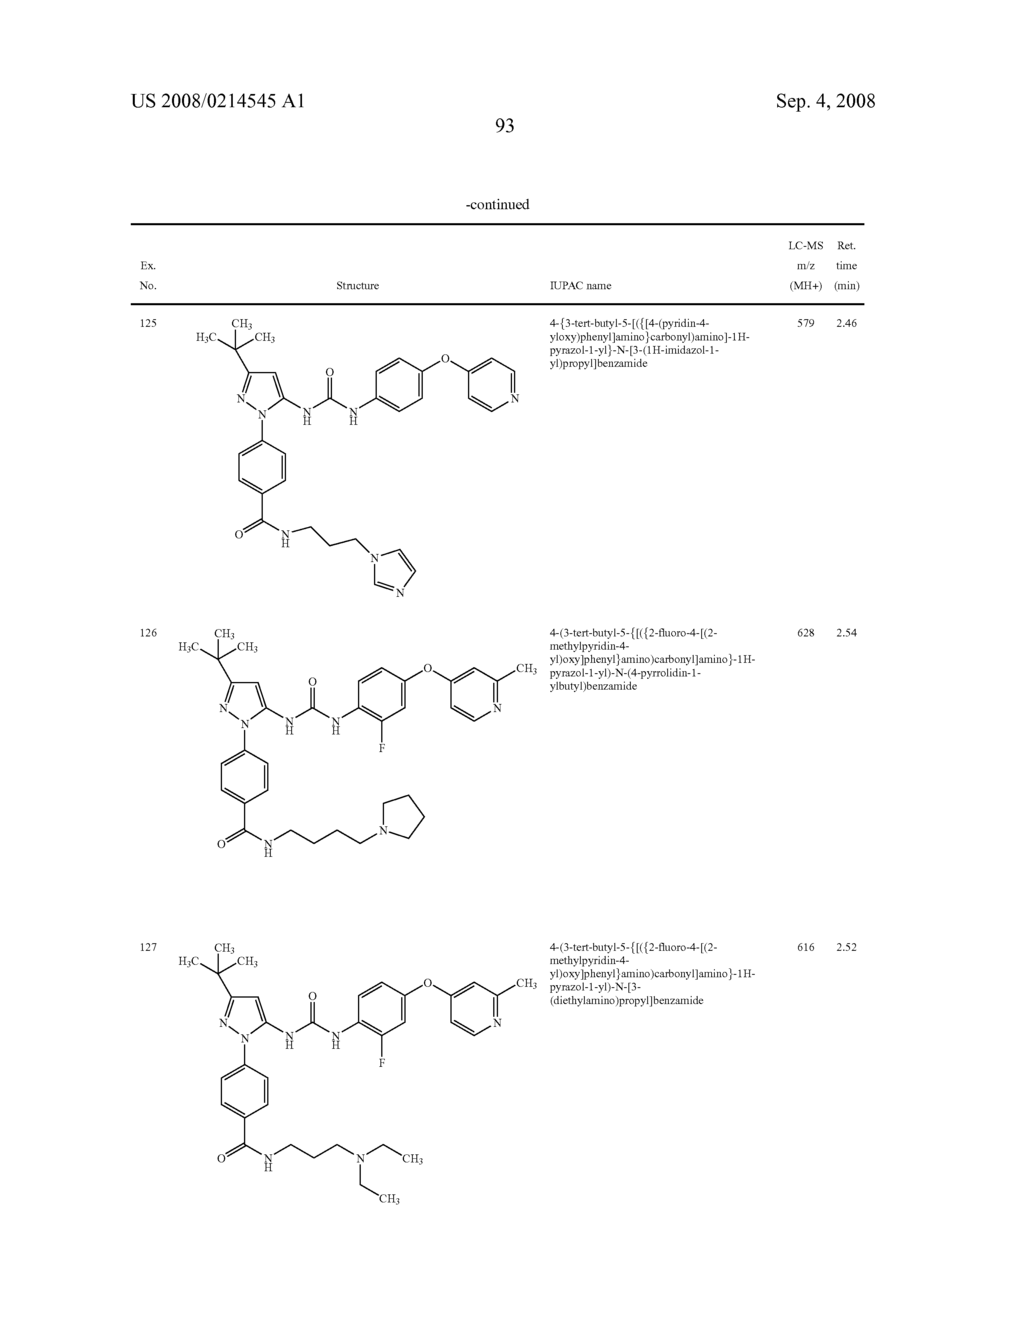 Substituted Pyrazolyl Urea Derivatives Useful in the Treatment of Cancer - diagram, schematic, and image 94